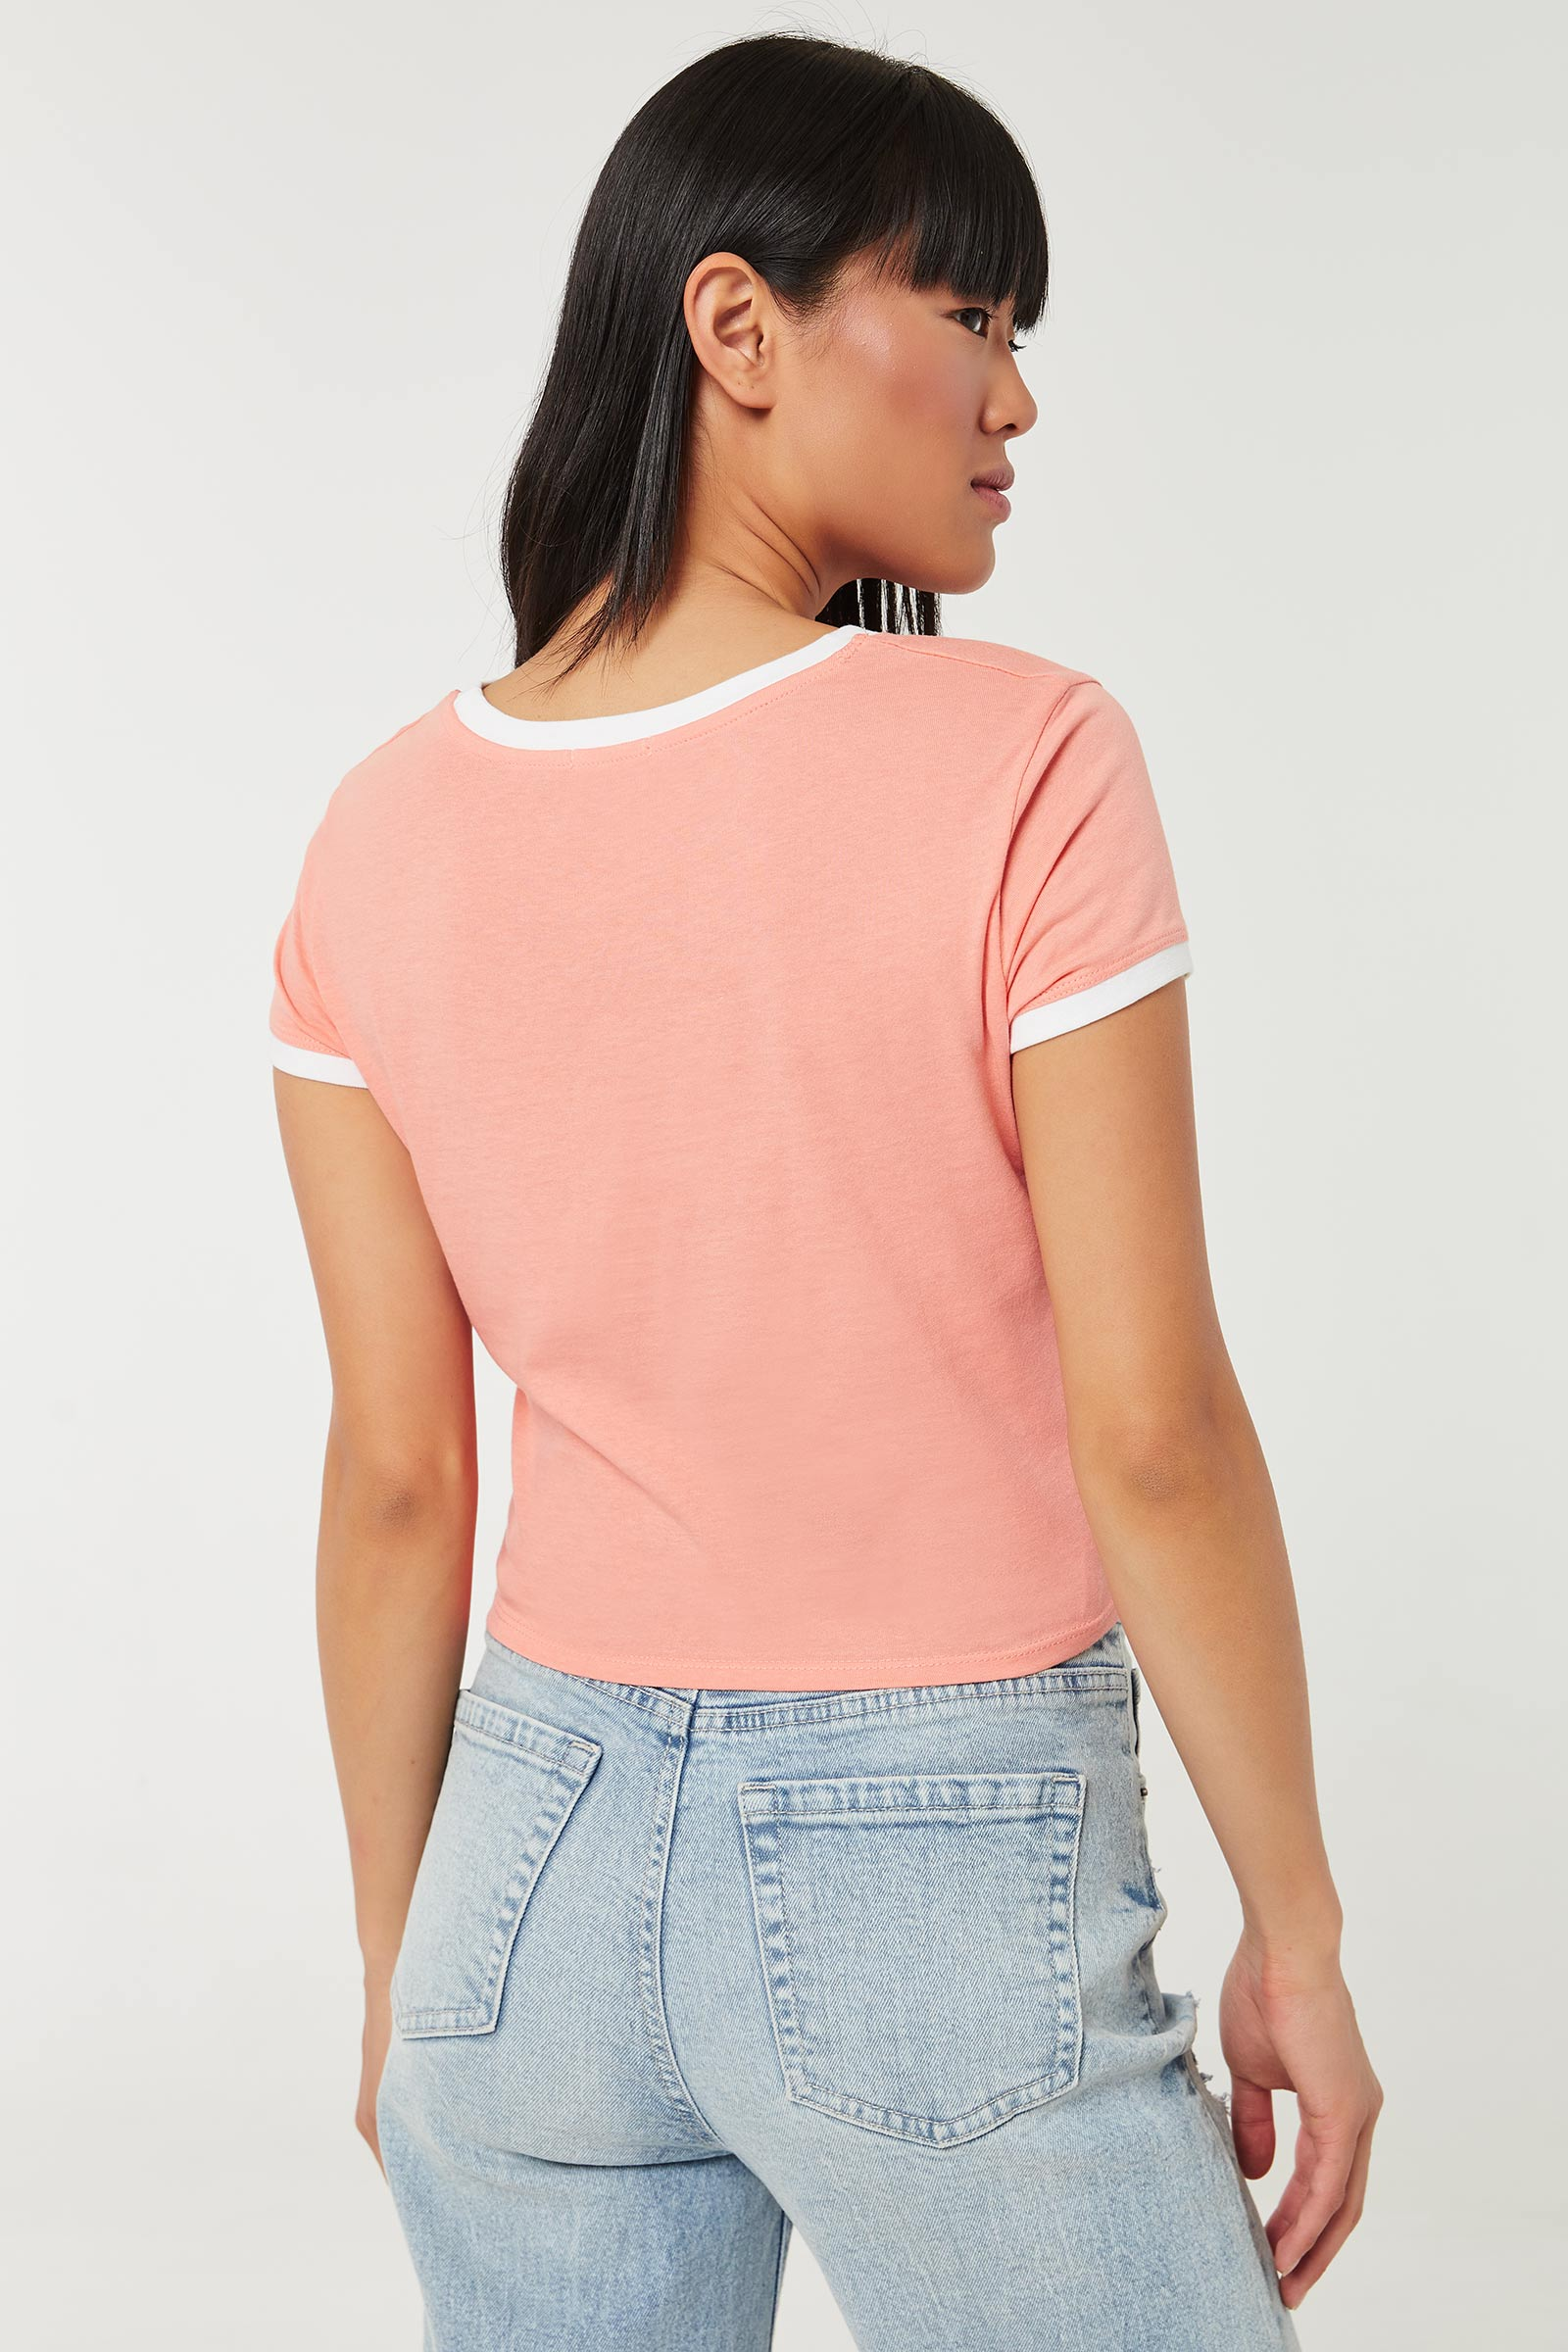 Knotted Ringer Tee